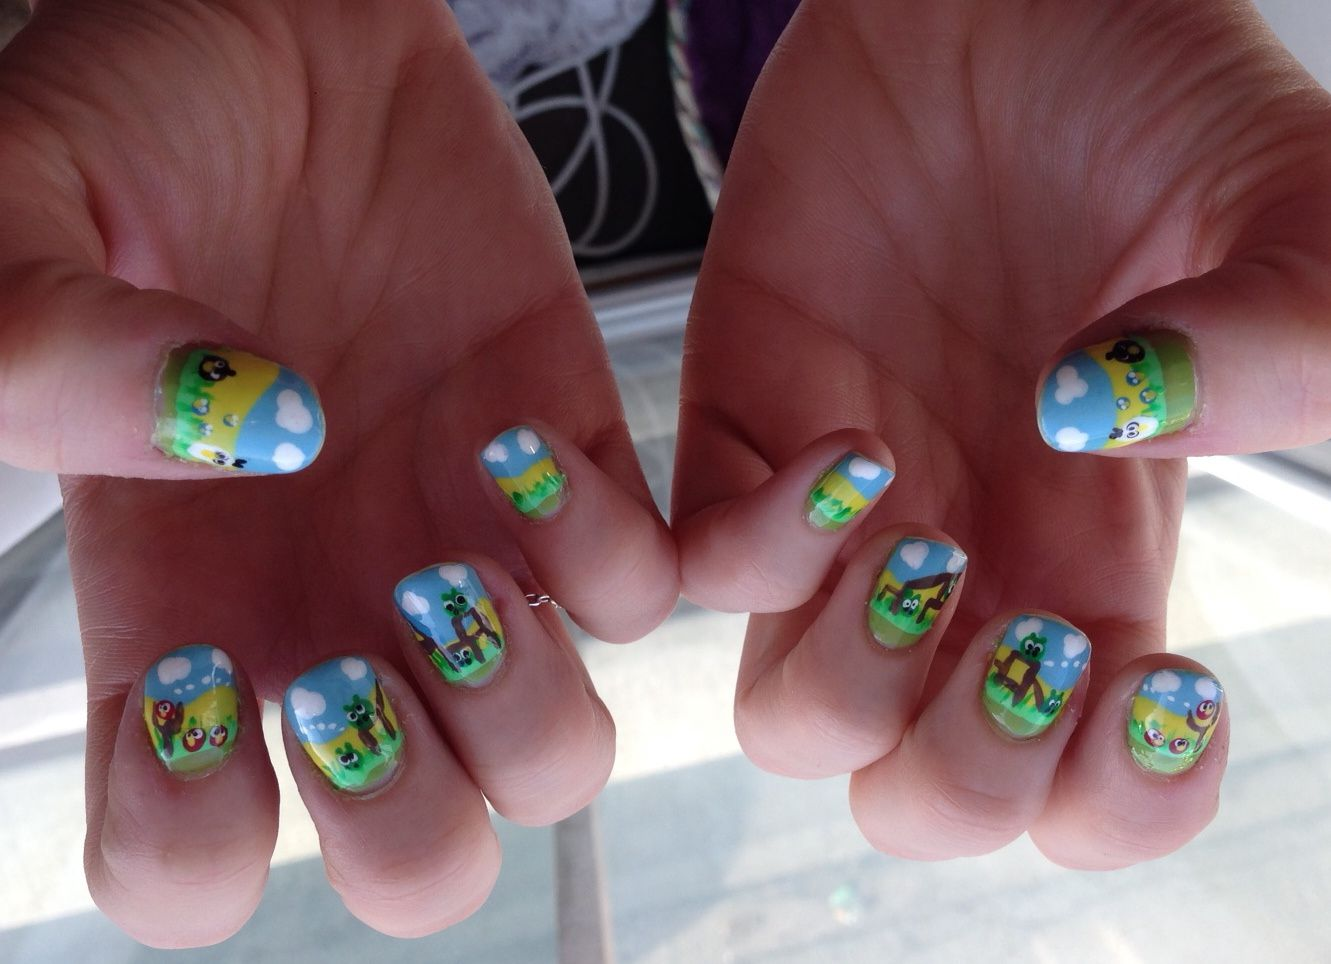 nailstorming jeux video